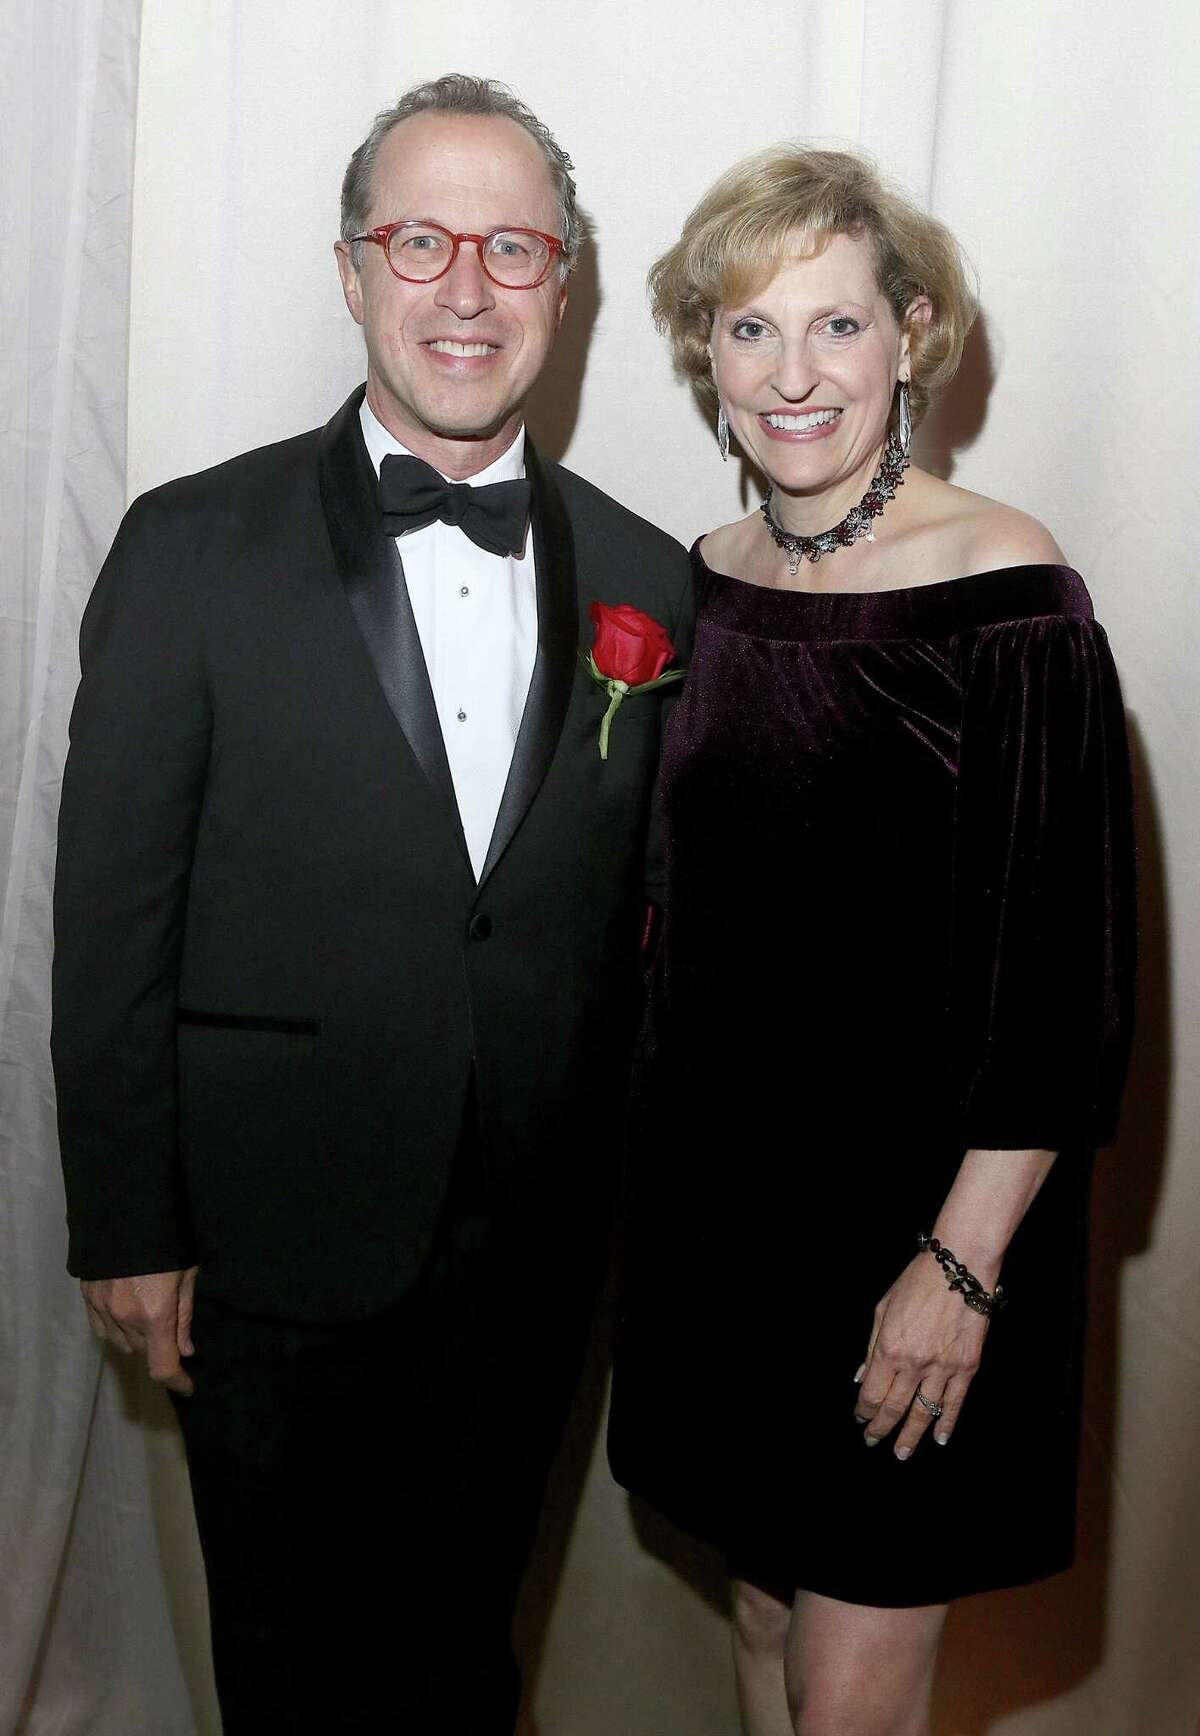 Albanyy, NY - October 30, 2019 - (Photo by Joe Putrock/Special to the Times Union) - Grammy Award-winning Albany Symphony Orchestra Conductor and 2019 Community Laureate David Alan Miller, left, and his wife Andrea Oser during the University at Albany Foundationa€™s 40th Annual Citizen Laureate Awards dinner at the UAlbany SEFCU Arena.